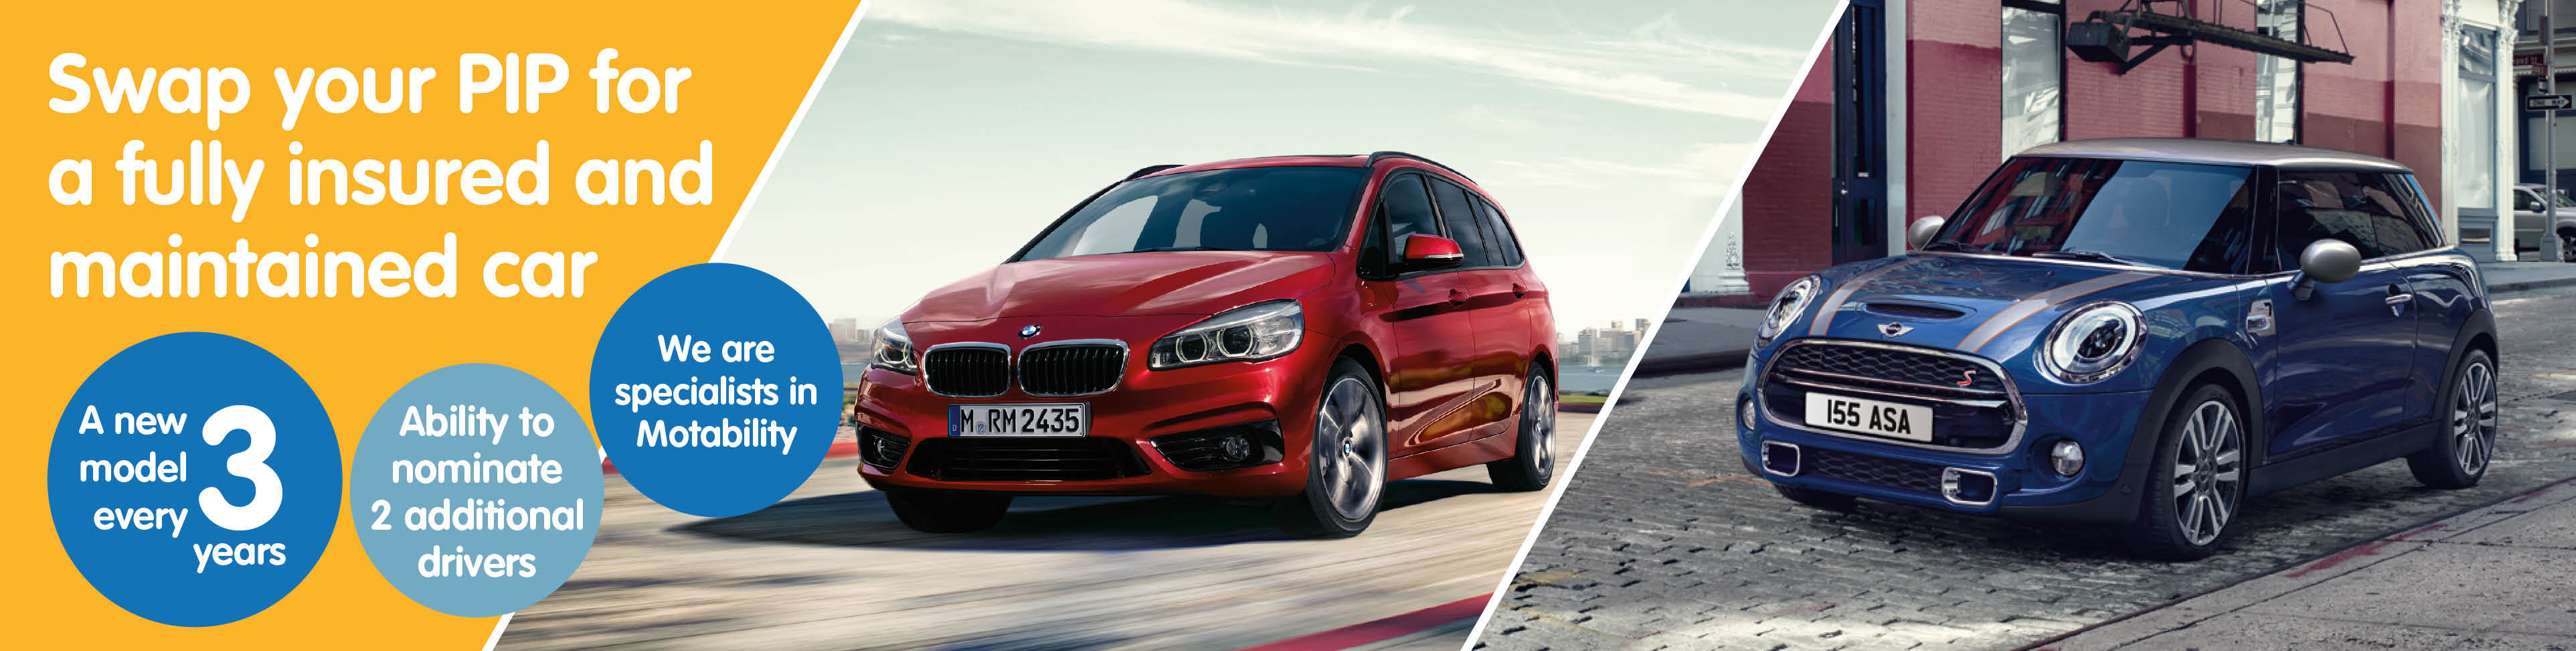 Our Latest Motability Offers